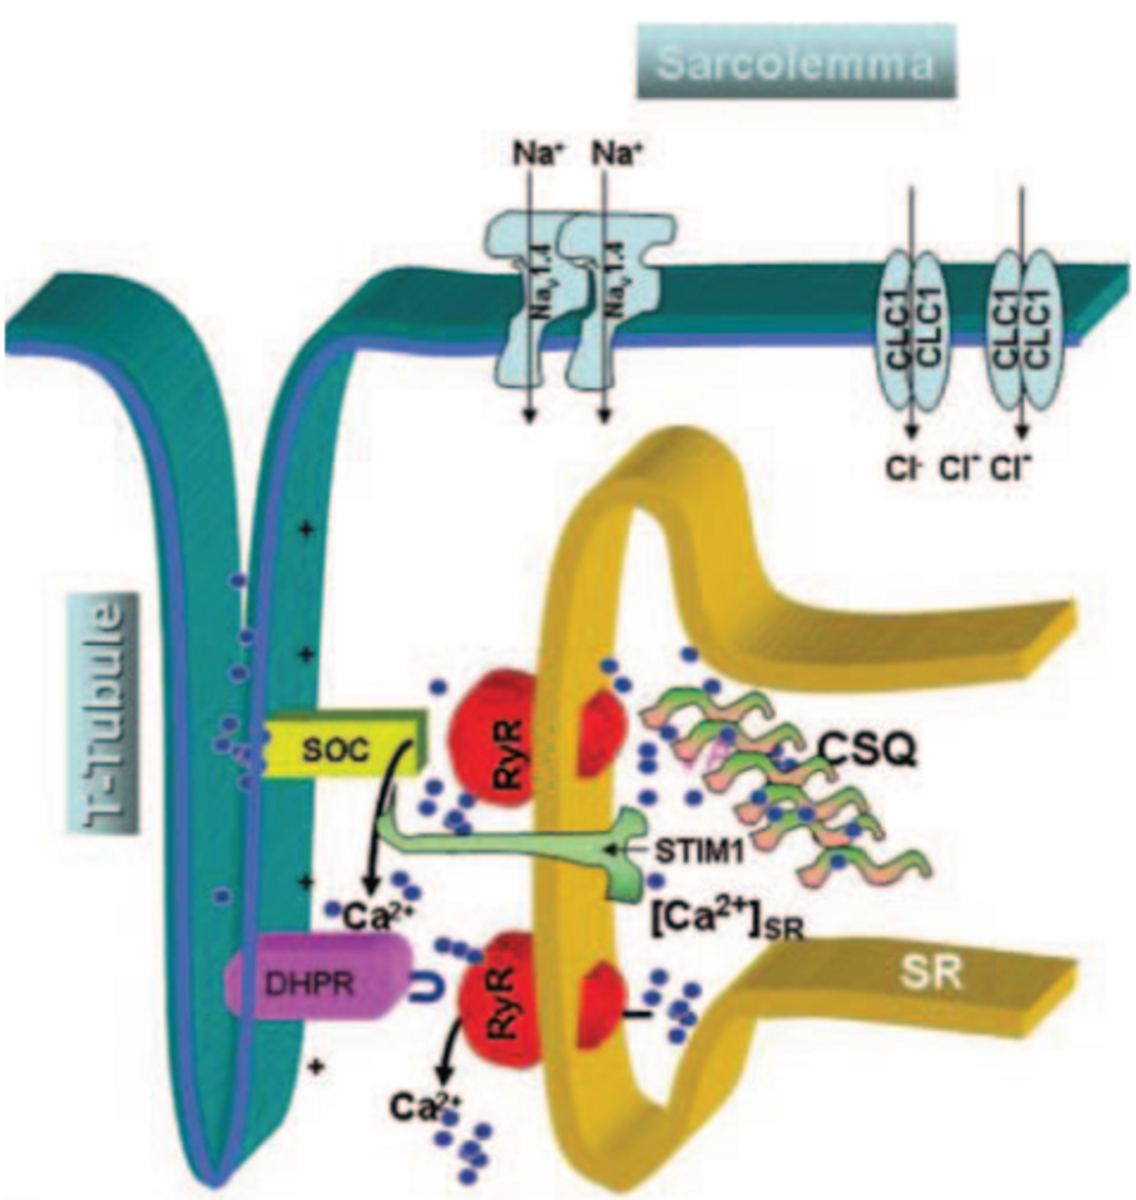 Schematic of the elements of skeletal muscle excitation–Ca release coupling that functions in normal excitation–contraction coupling